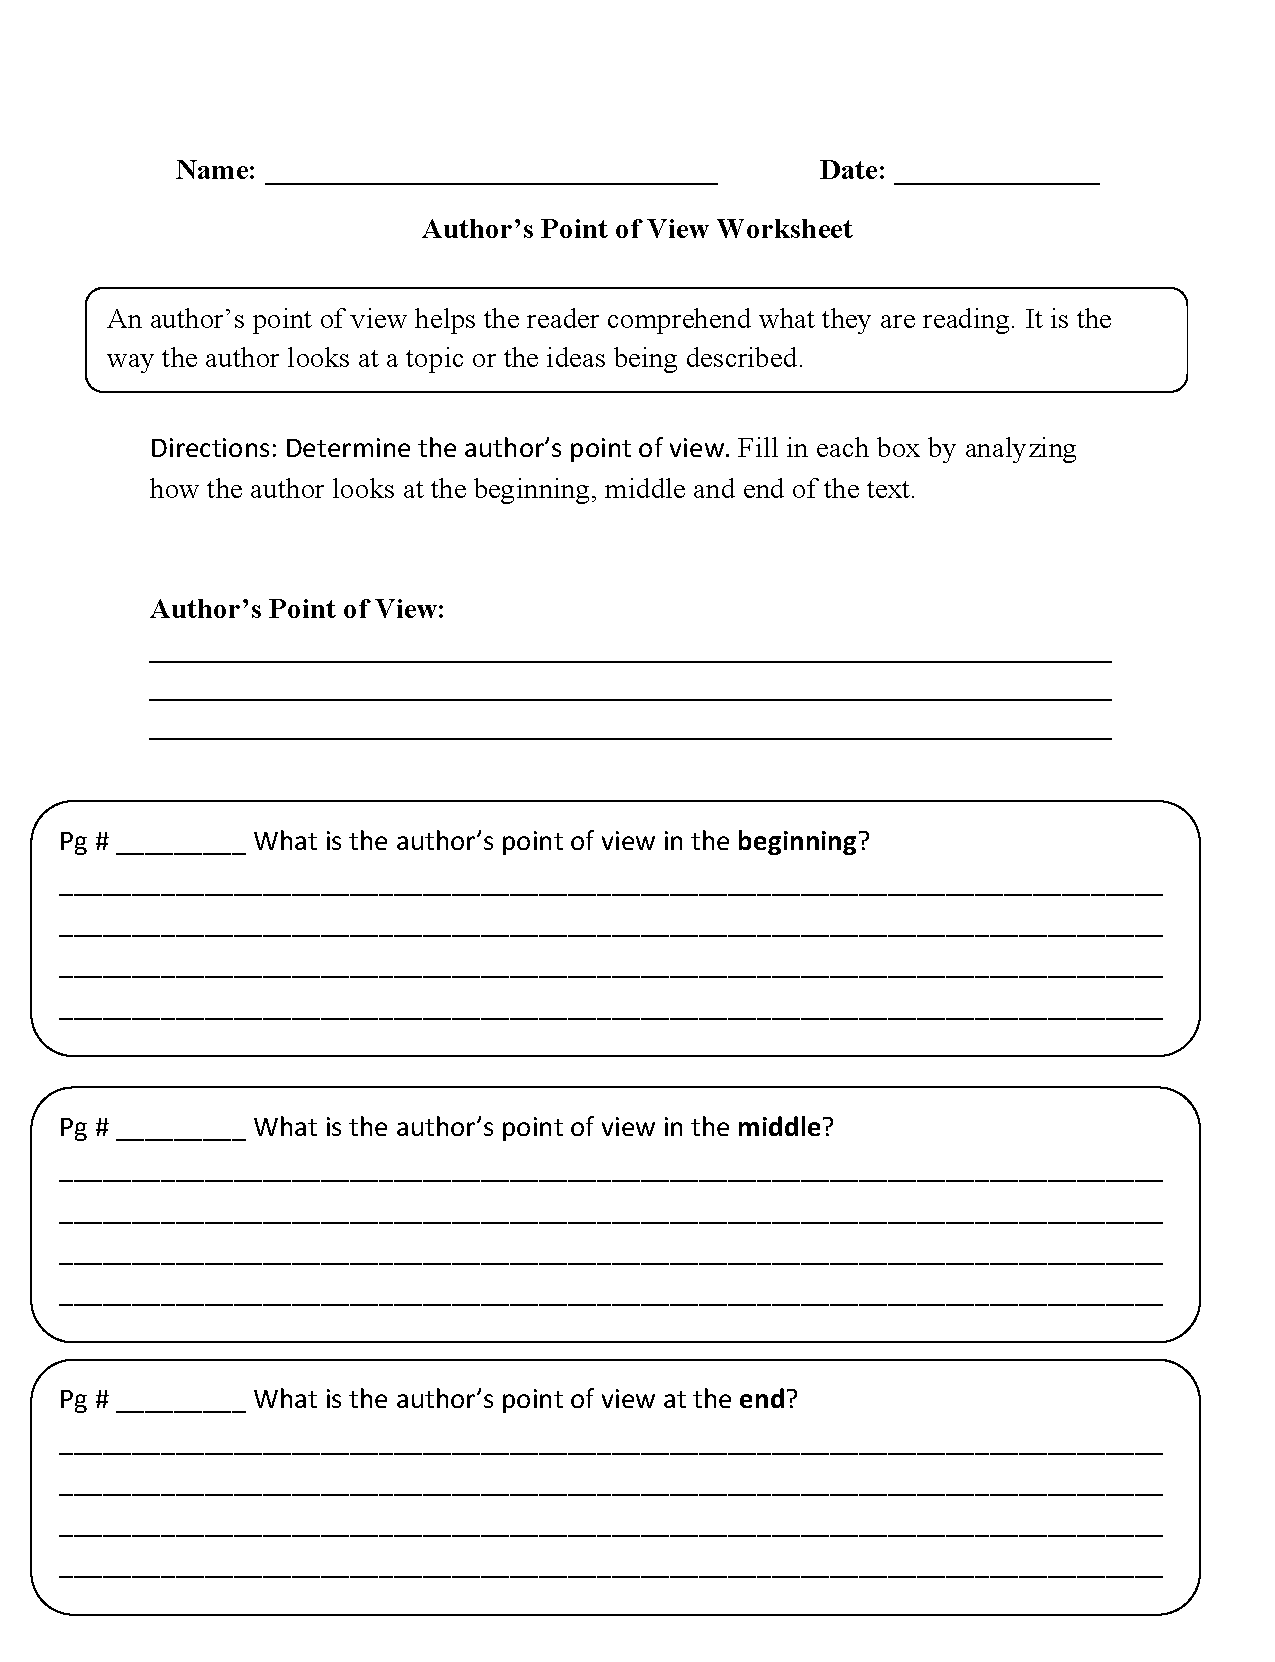 Weirdmailus  Outstanding Englishlinxcom  Point Of View Worksheets With Extraordinary Point Of View Worksheets With Beautiful Spanish Conjugation Worksheet Also Free Multiplication Color By Number Worksheets In Addition Chemical Physical Properties Worksheet And Following Directions Printable Worksheets As Well As Letter N Worksheets For Prek Additionally Facts Worksheets From Englishlinxcom With Weirdmailus  Extraordinary Englishlinxcom  Point Of View Worksheets With Beautiful Point Of View Worksheets And Outstanding Spanish Conjugation Worksheet Also Free Multiplication Color By Number Worksheets In Addition Chemical Physical Properties Worksheet From Englishlinxcom